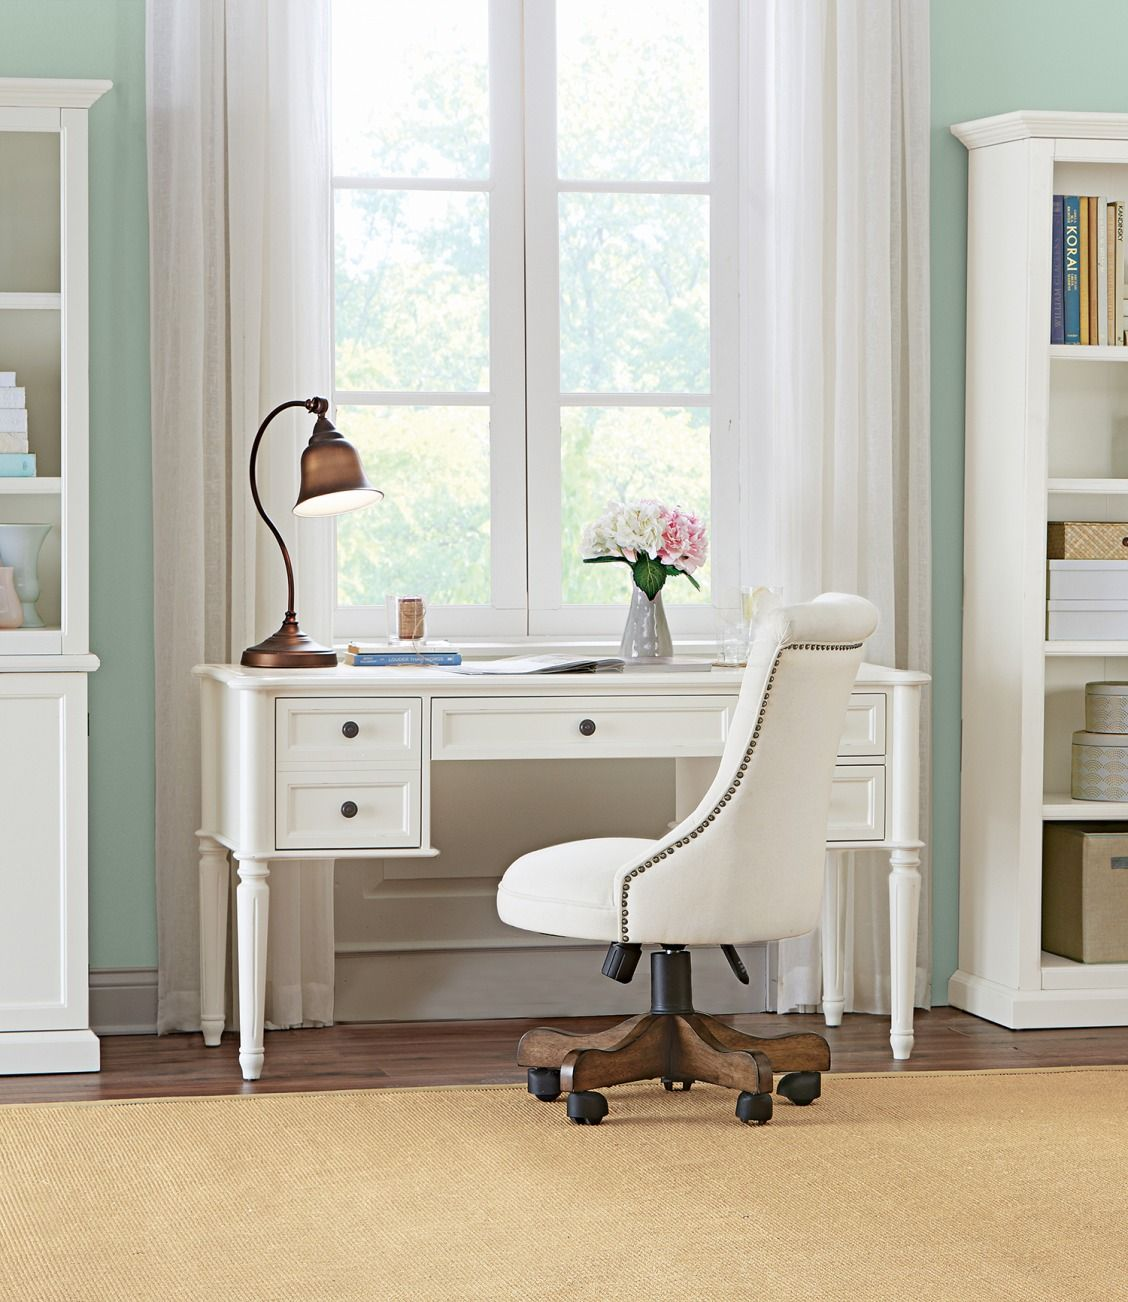 Create An Office You'll Love At Home. A Desk Is Essential